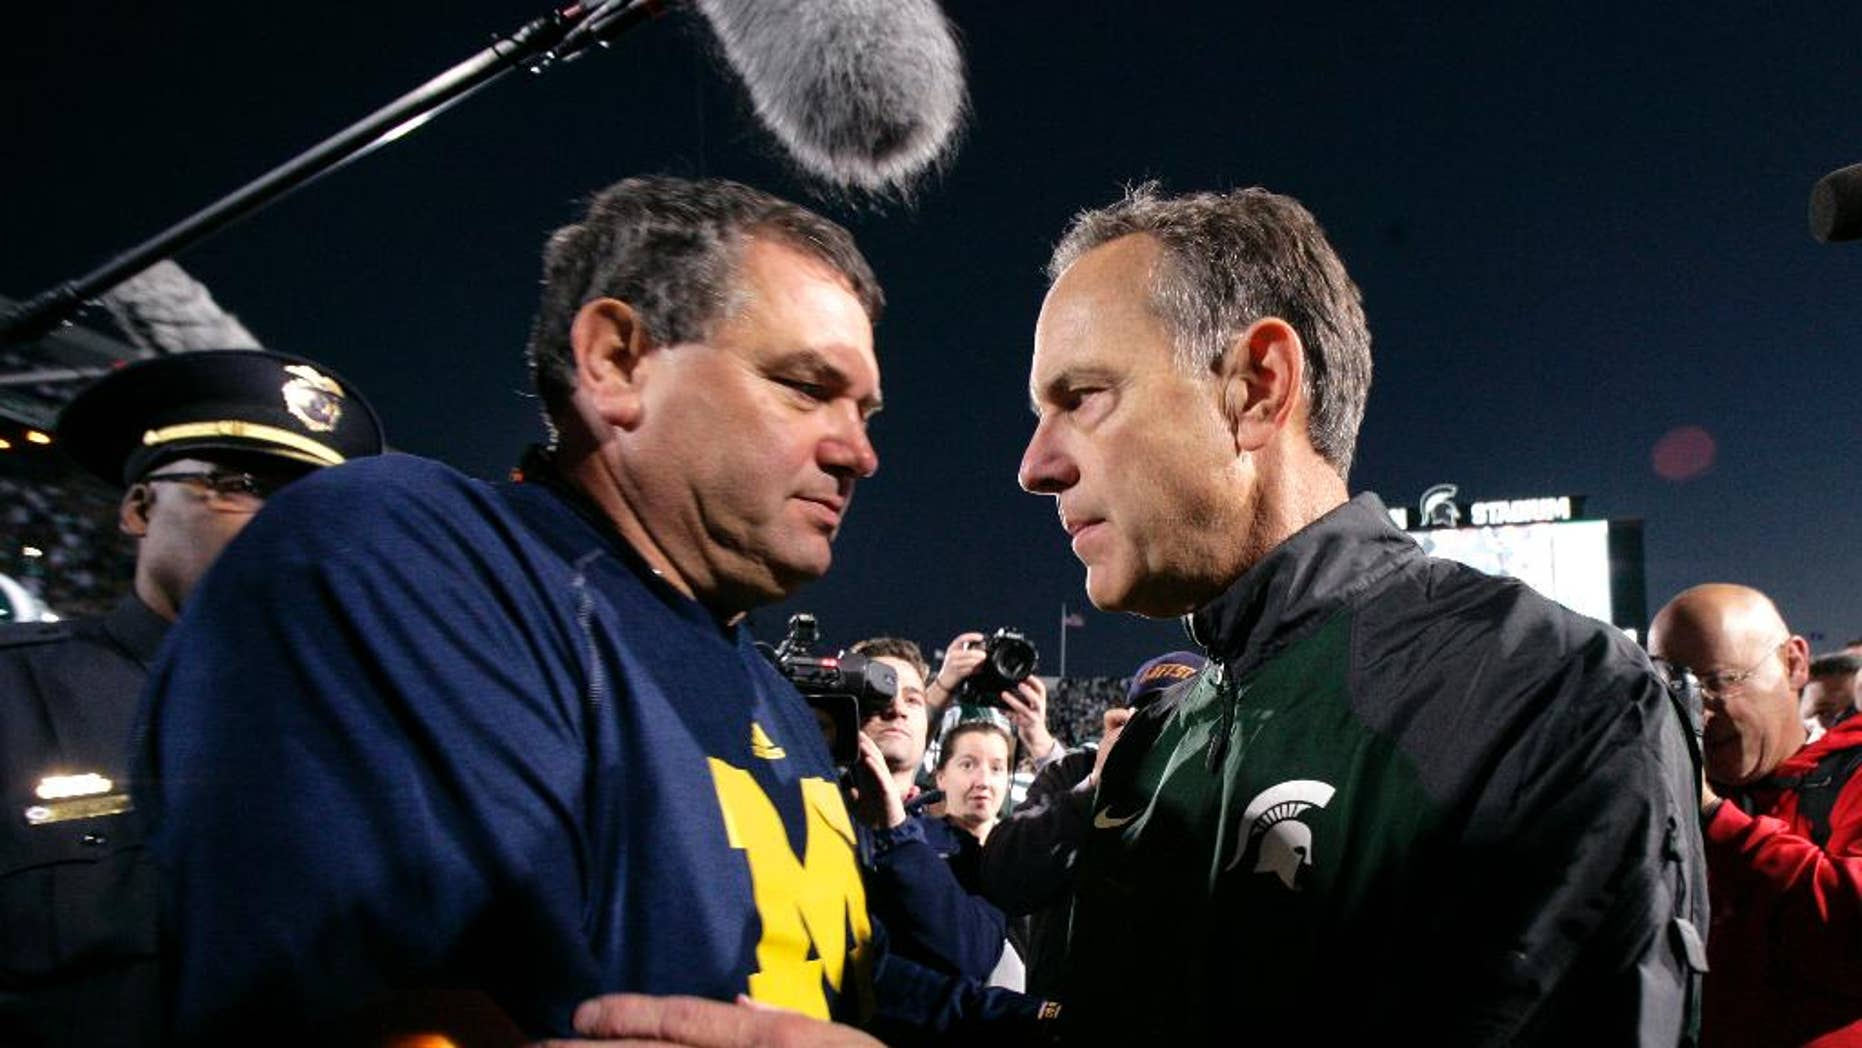 Michigan State coach Mark Dantonio, left, and Michigan coach Brady Hoke talk at midfield before an NCAA college football game, Saturday, Oct. 25, 2014, in East Lansing, Mich. (AP Photo/Al Goldis)